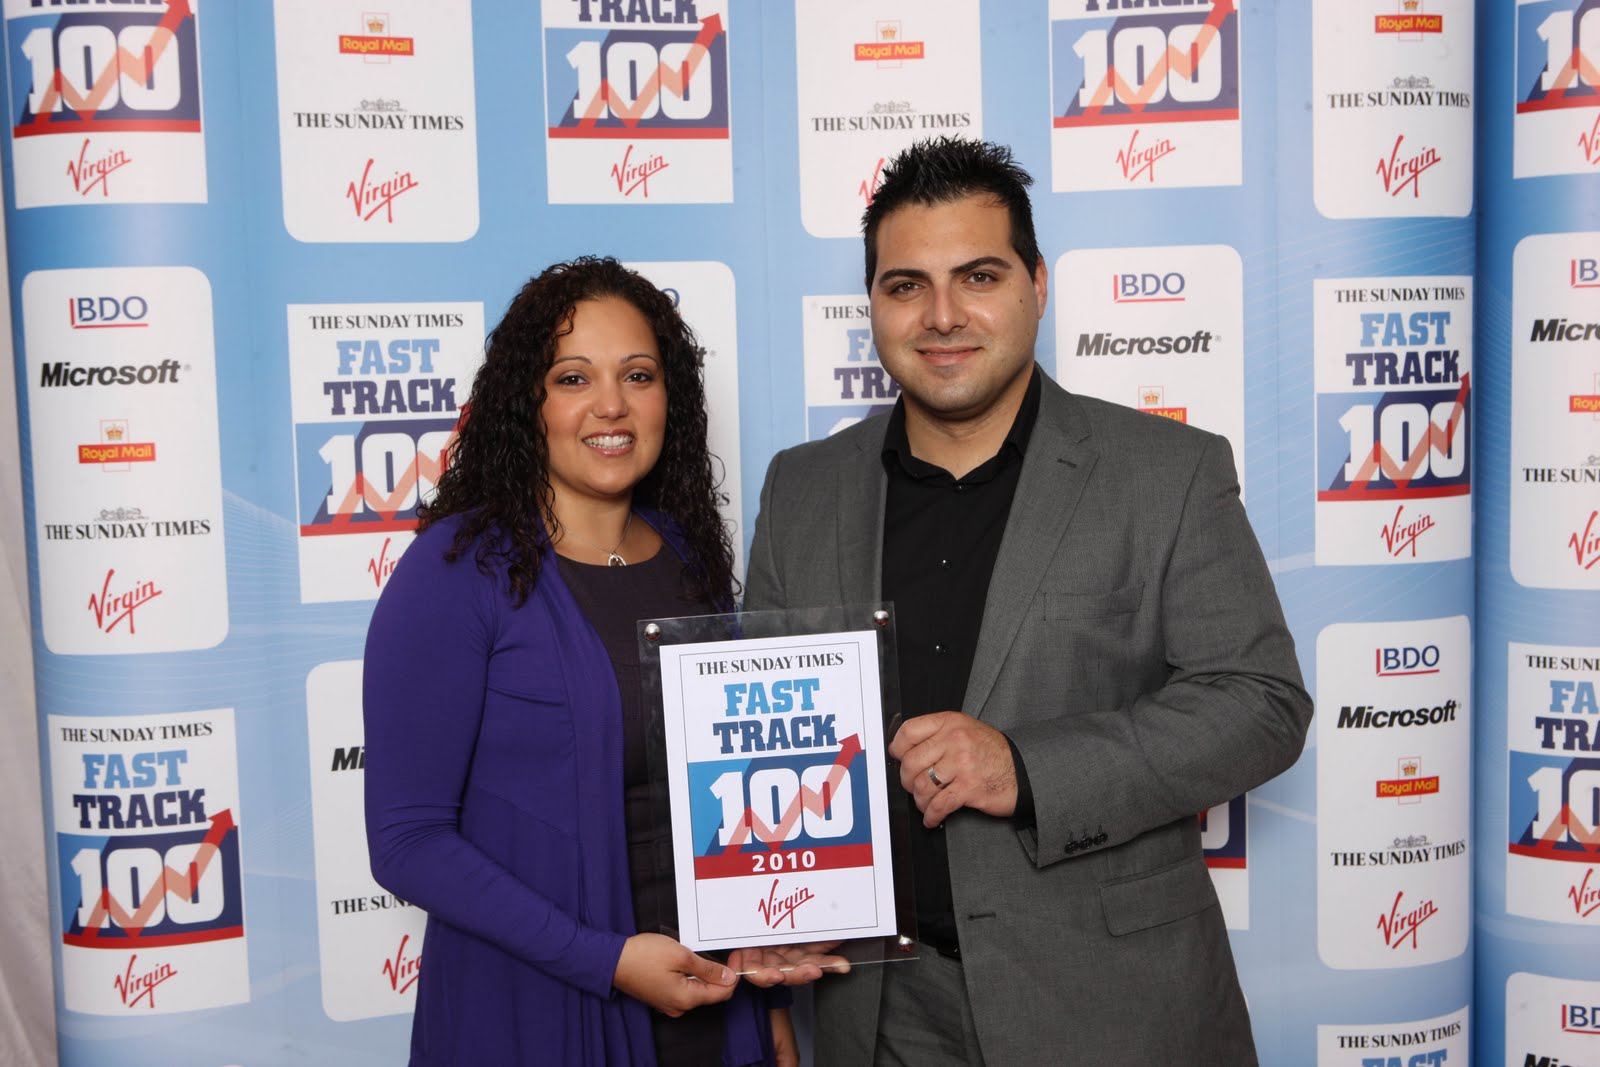 Sunday Times Virgin Fast Track 100 Award